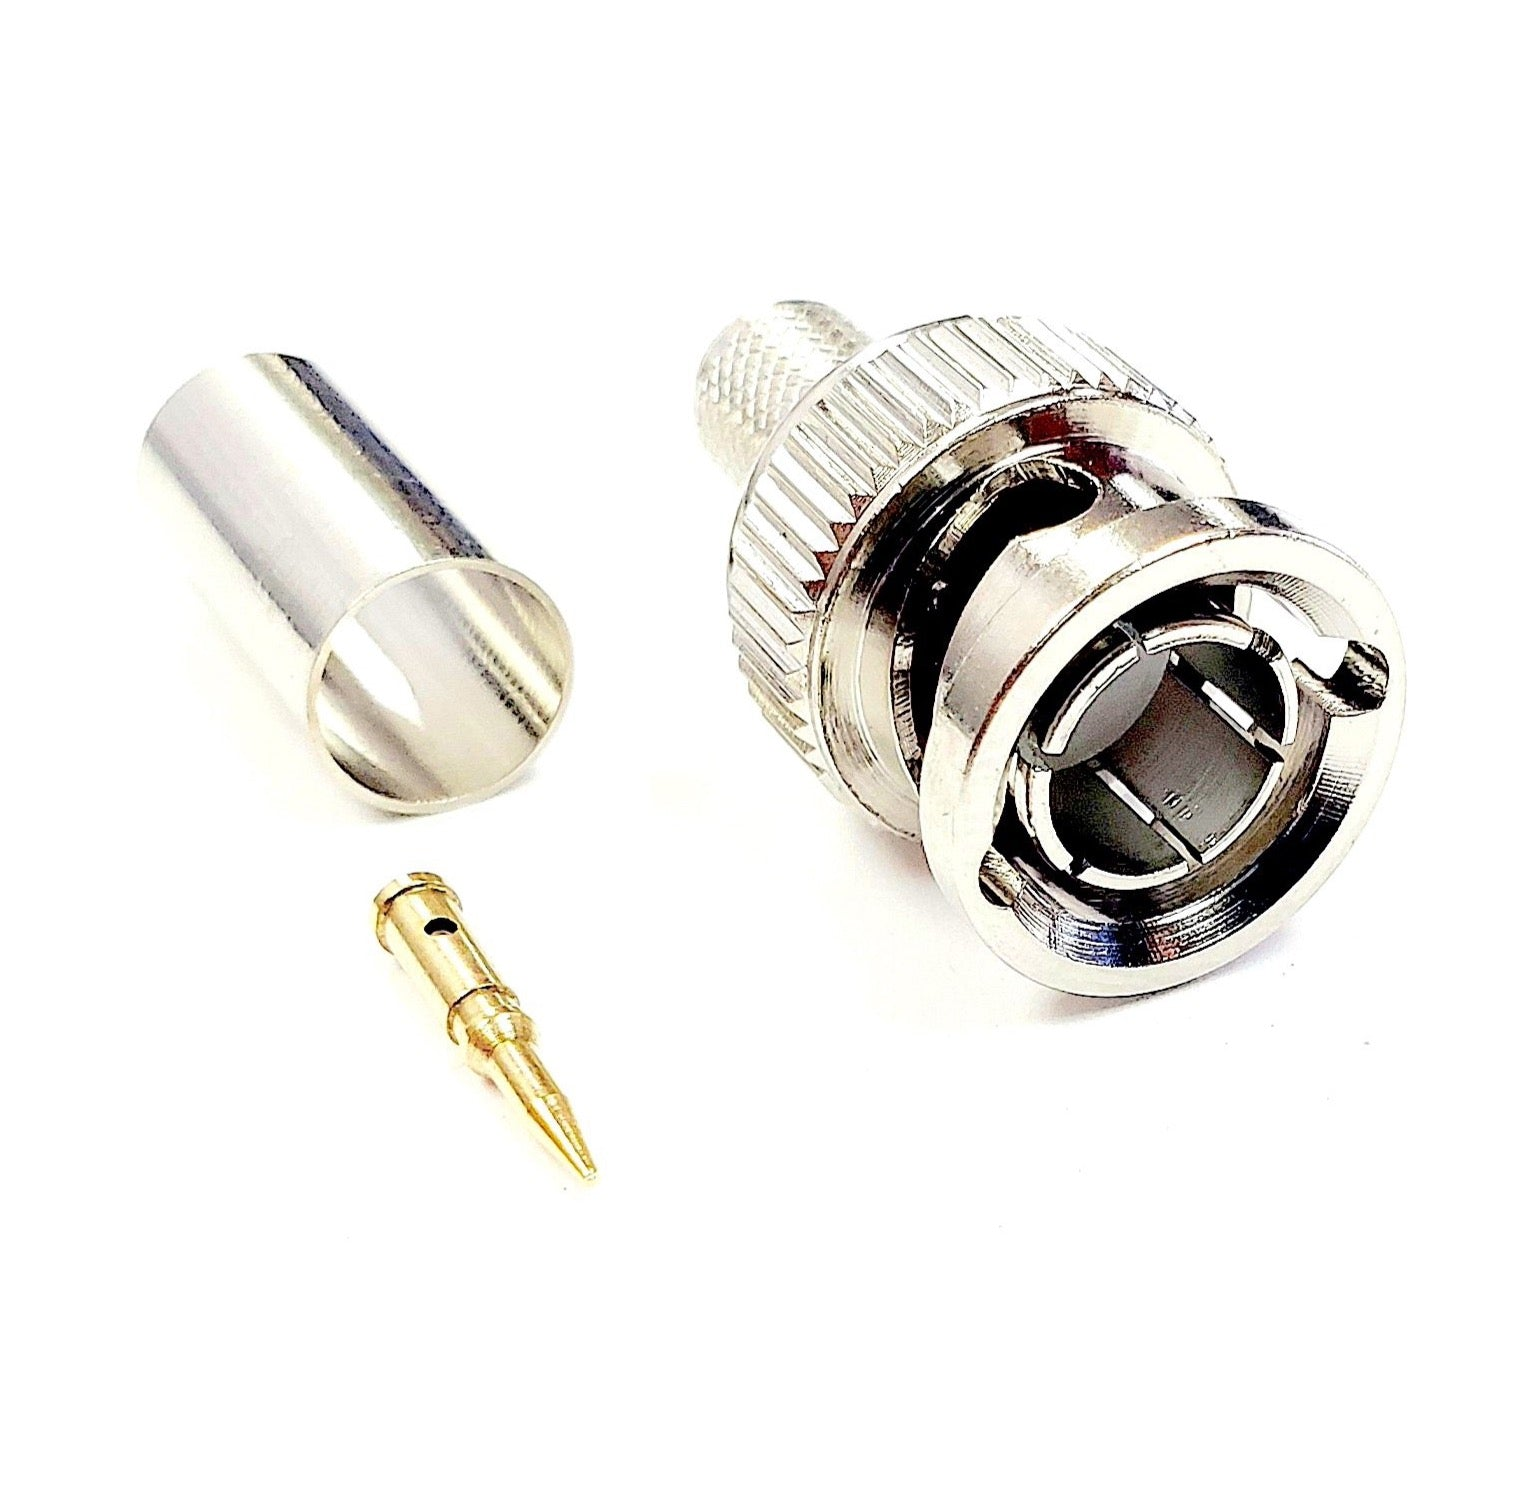 BNC Crimp Connector for Belden 1694A - 6 GHz - 75 Ohm